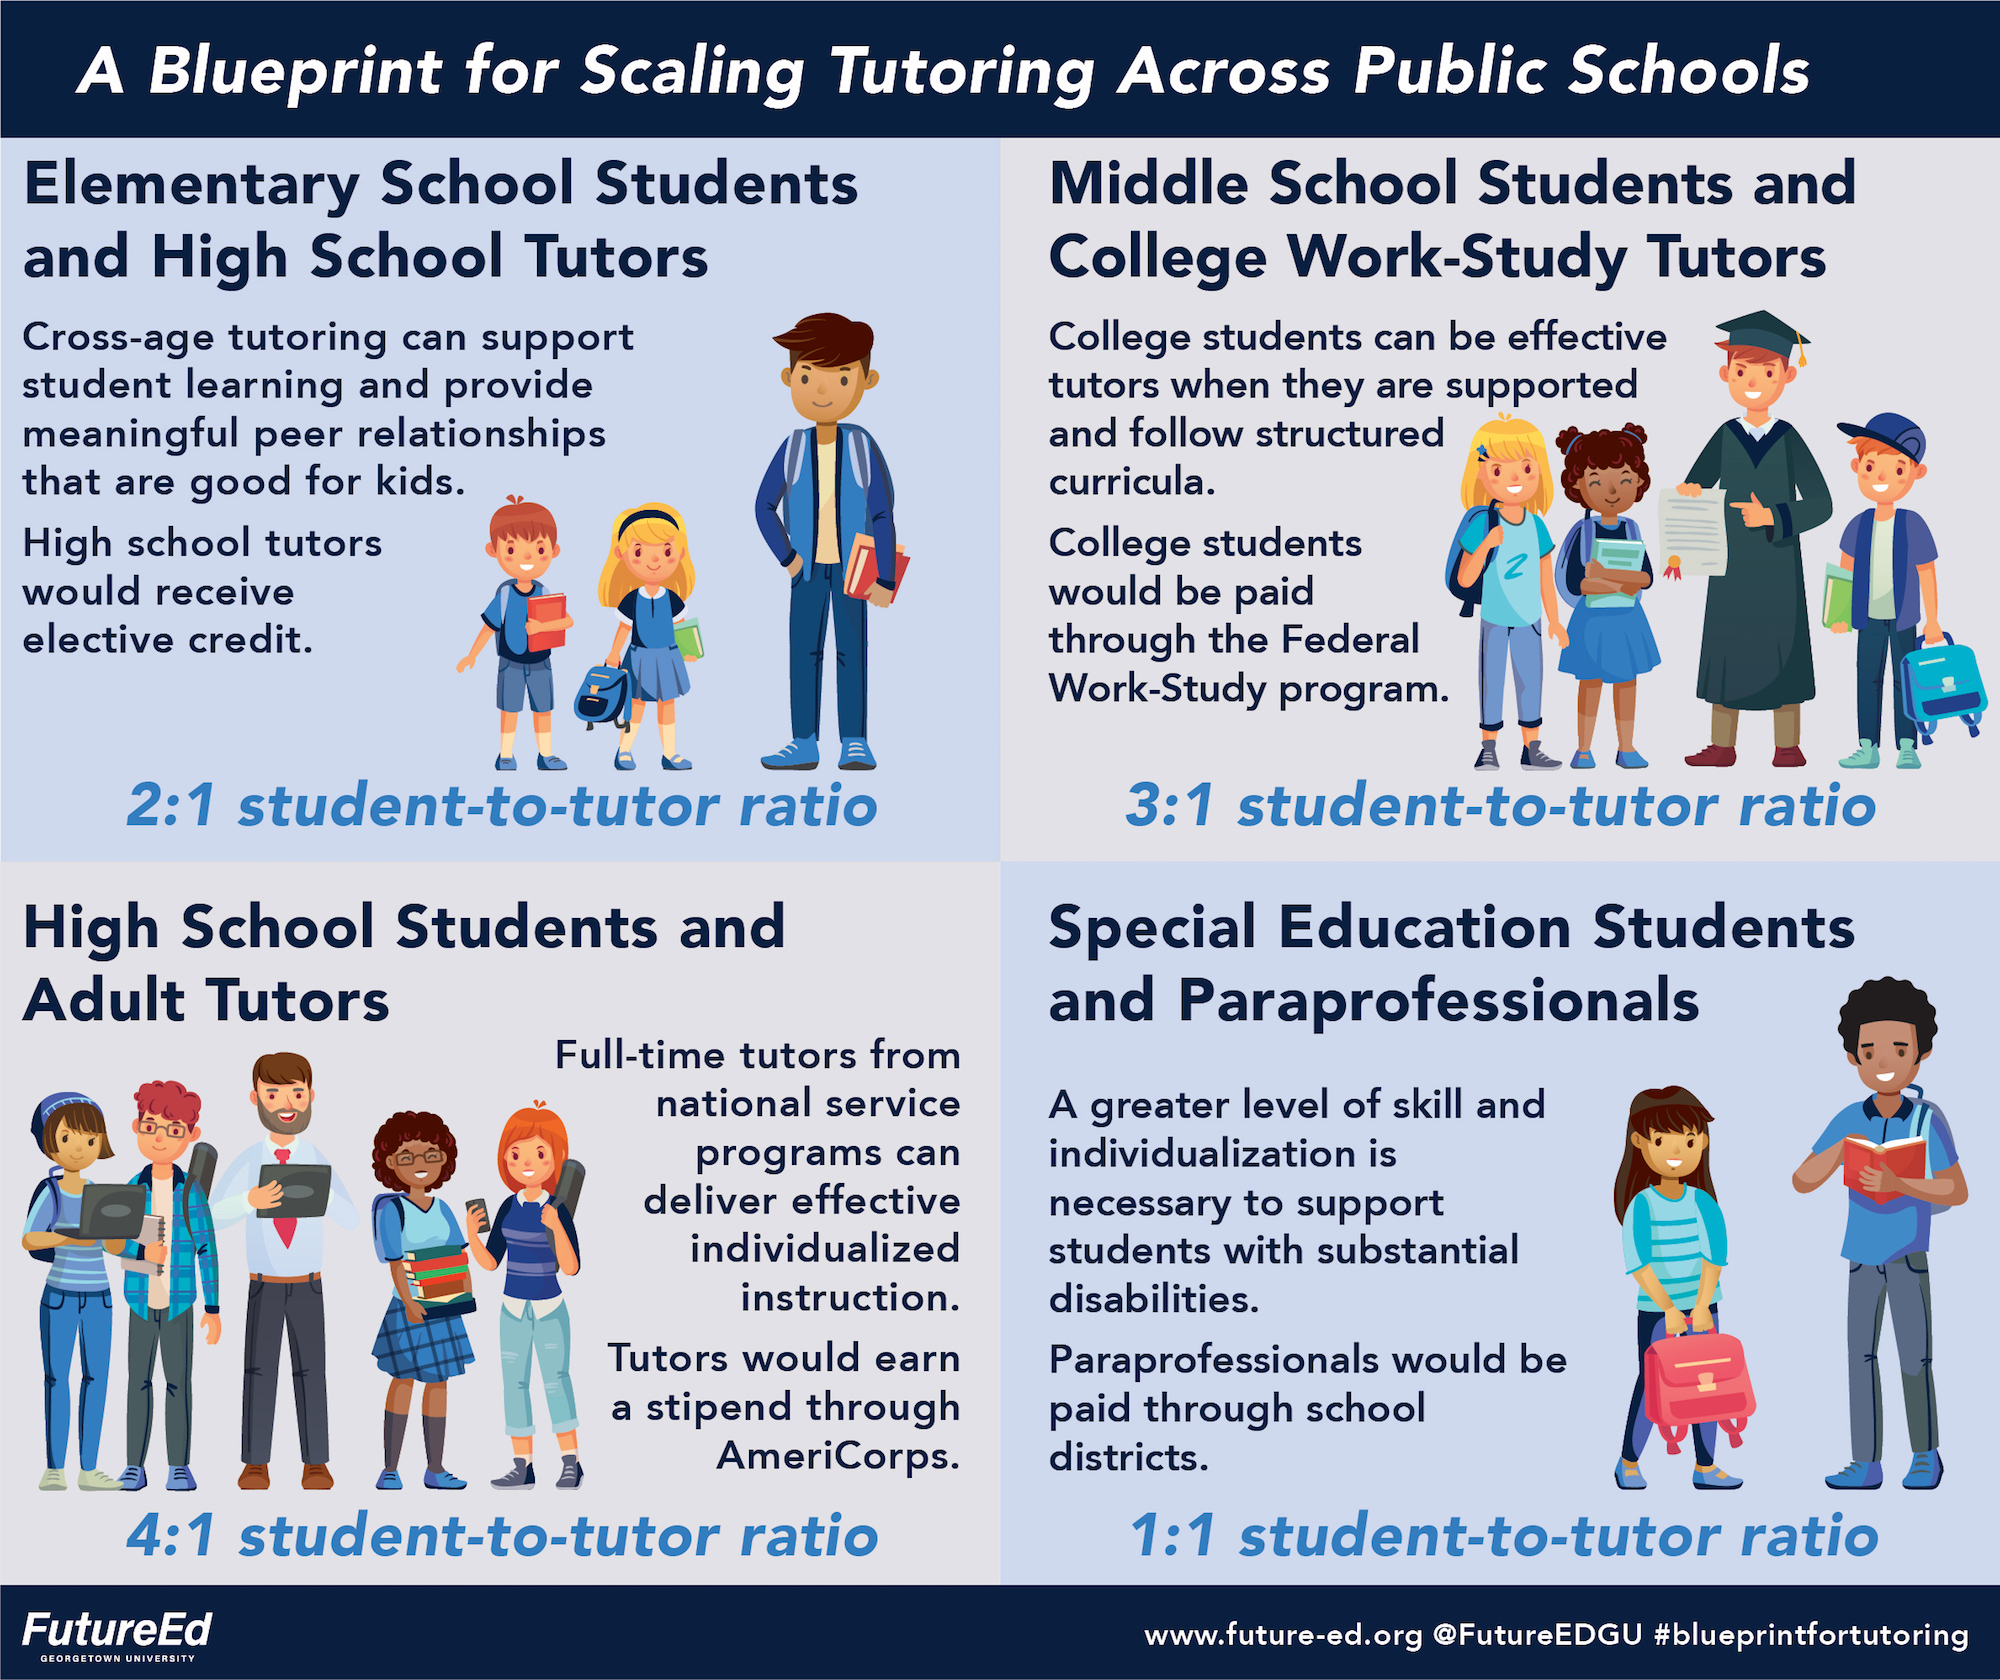 Graphic: A blueprint for scaling tutoring across public schools